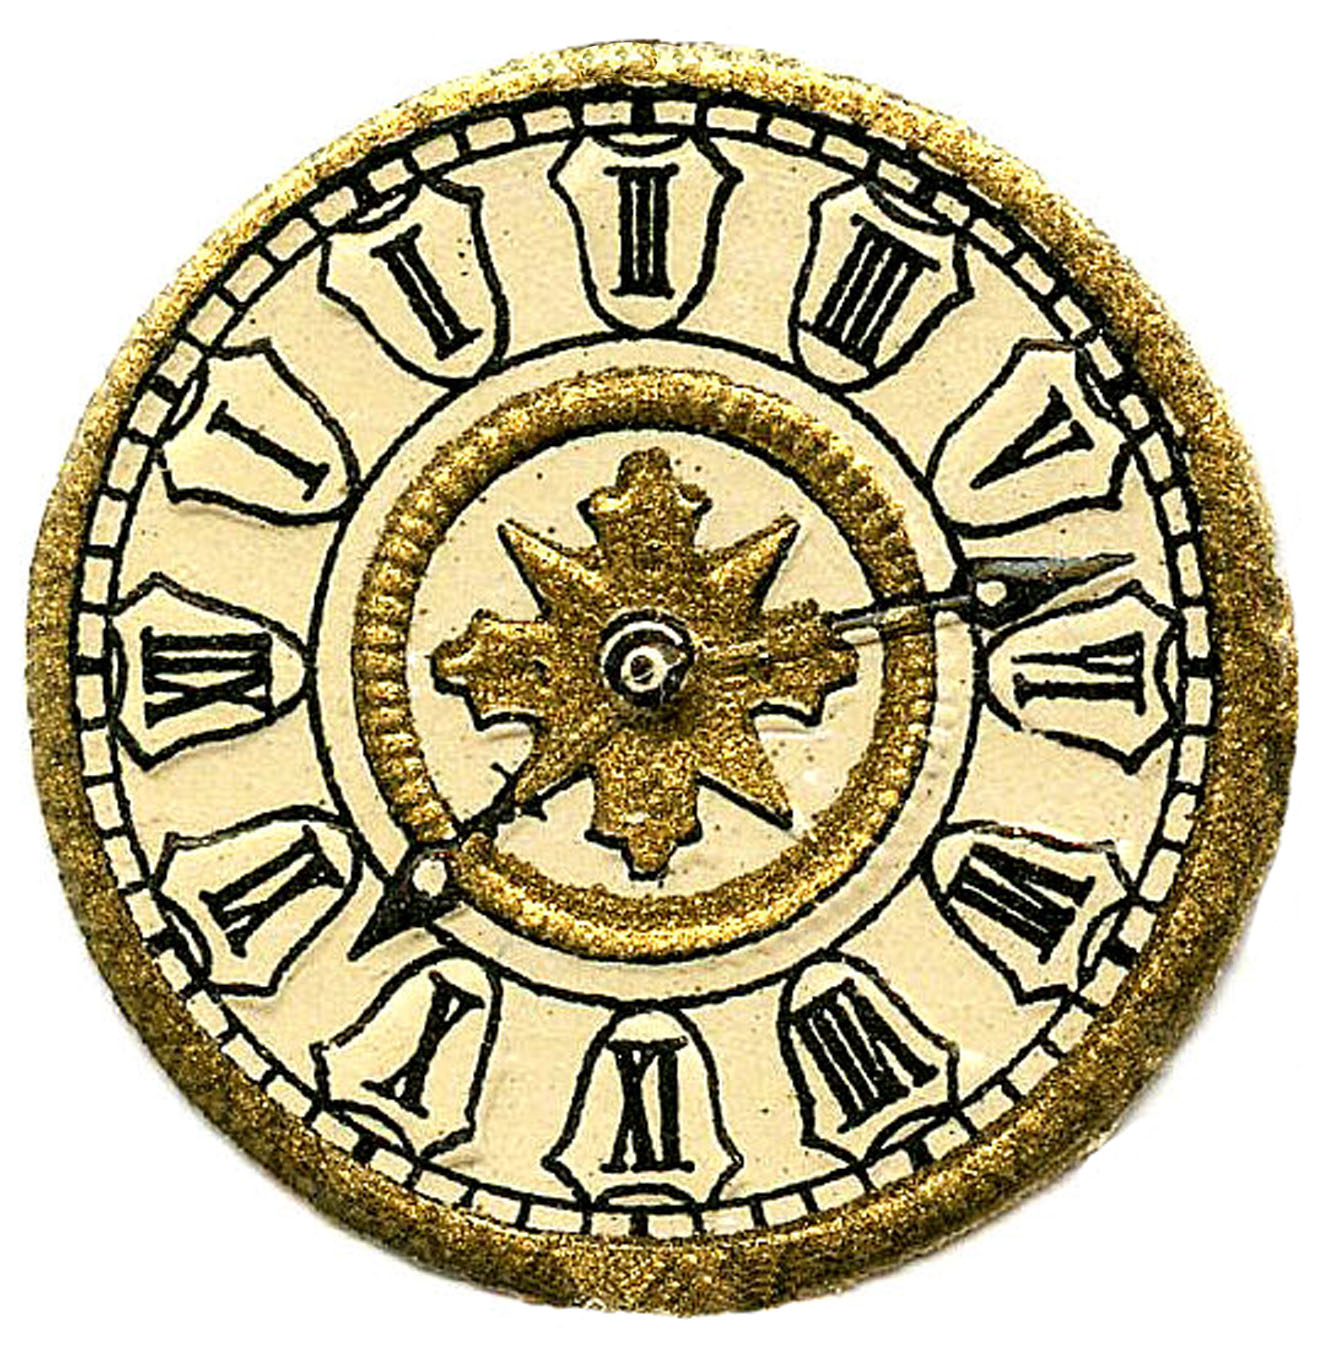 Cliparts free download best. Steampunk clipart antique clock